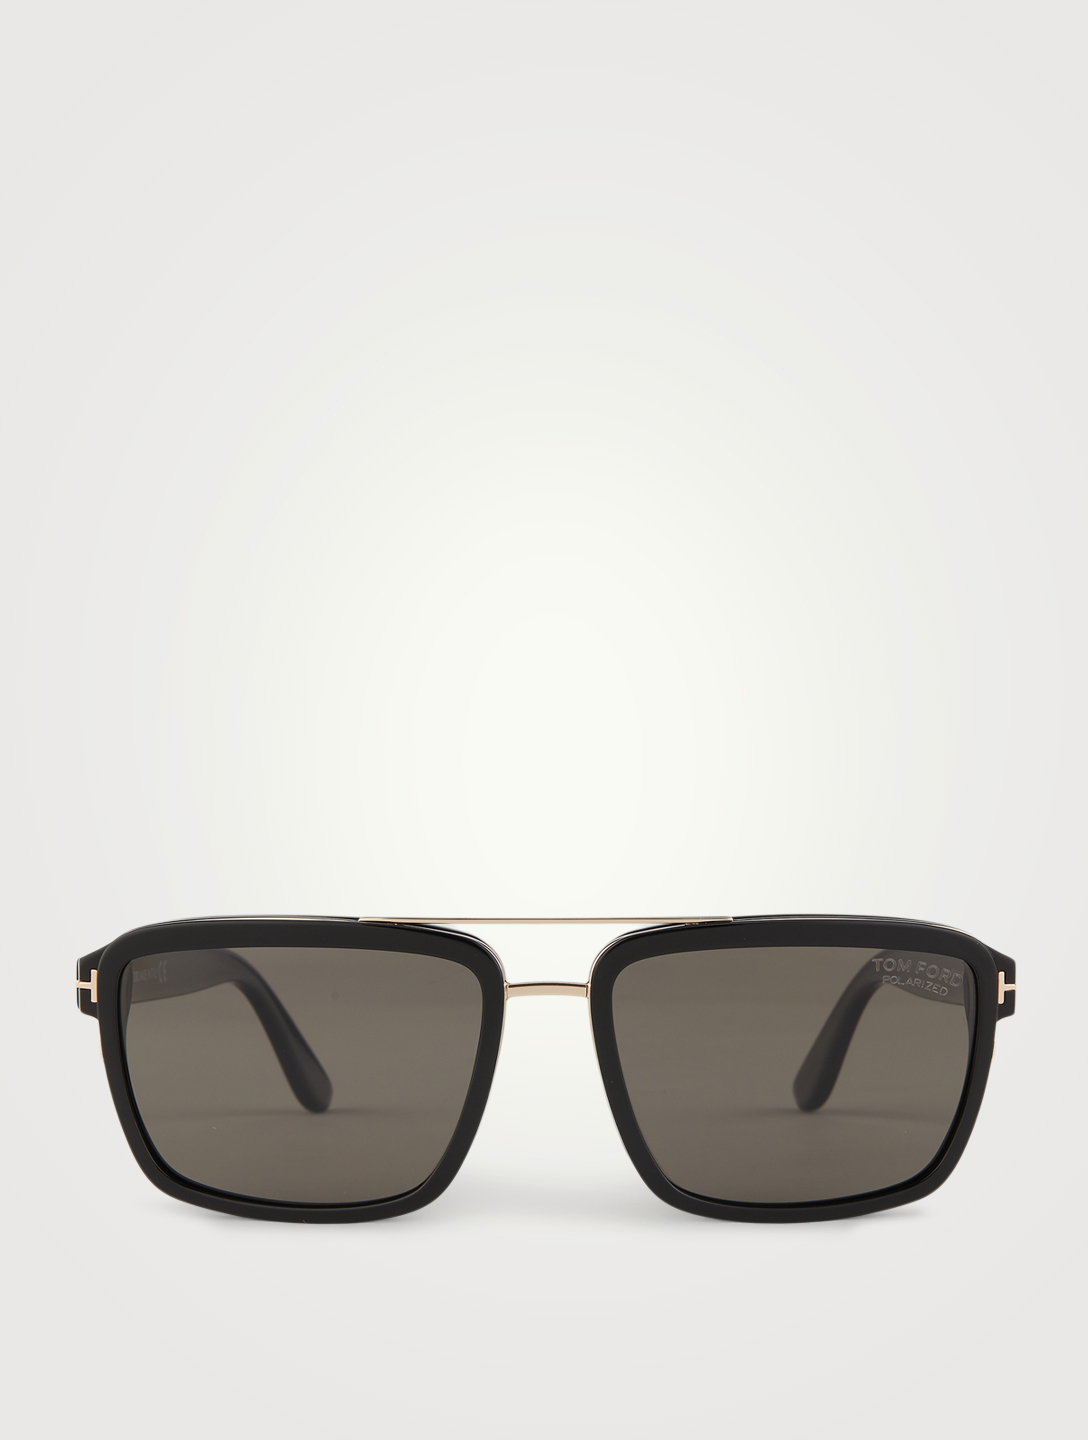 TOM FORD Anders Rectangular Aviator Sunglasses Men's Black